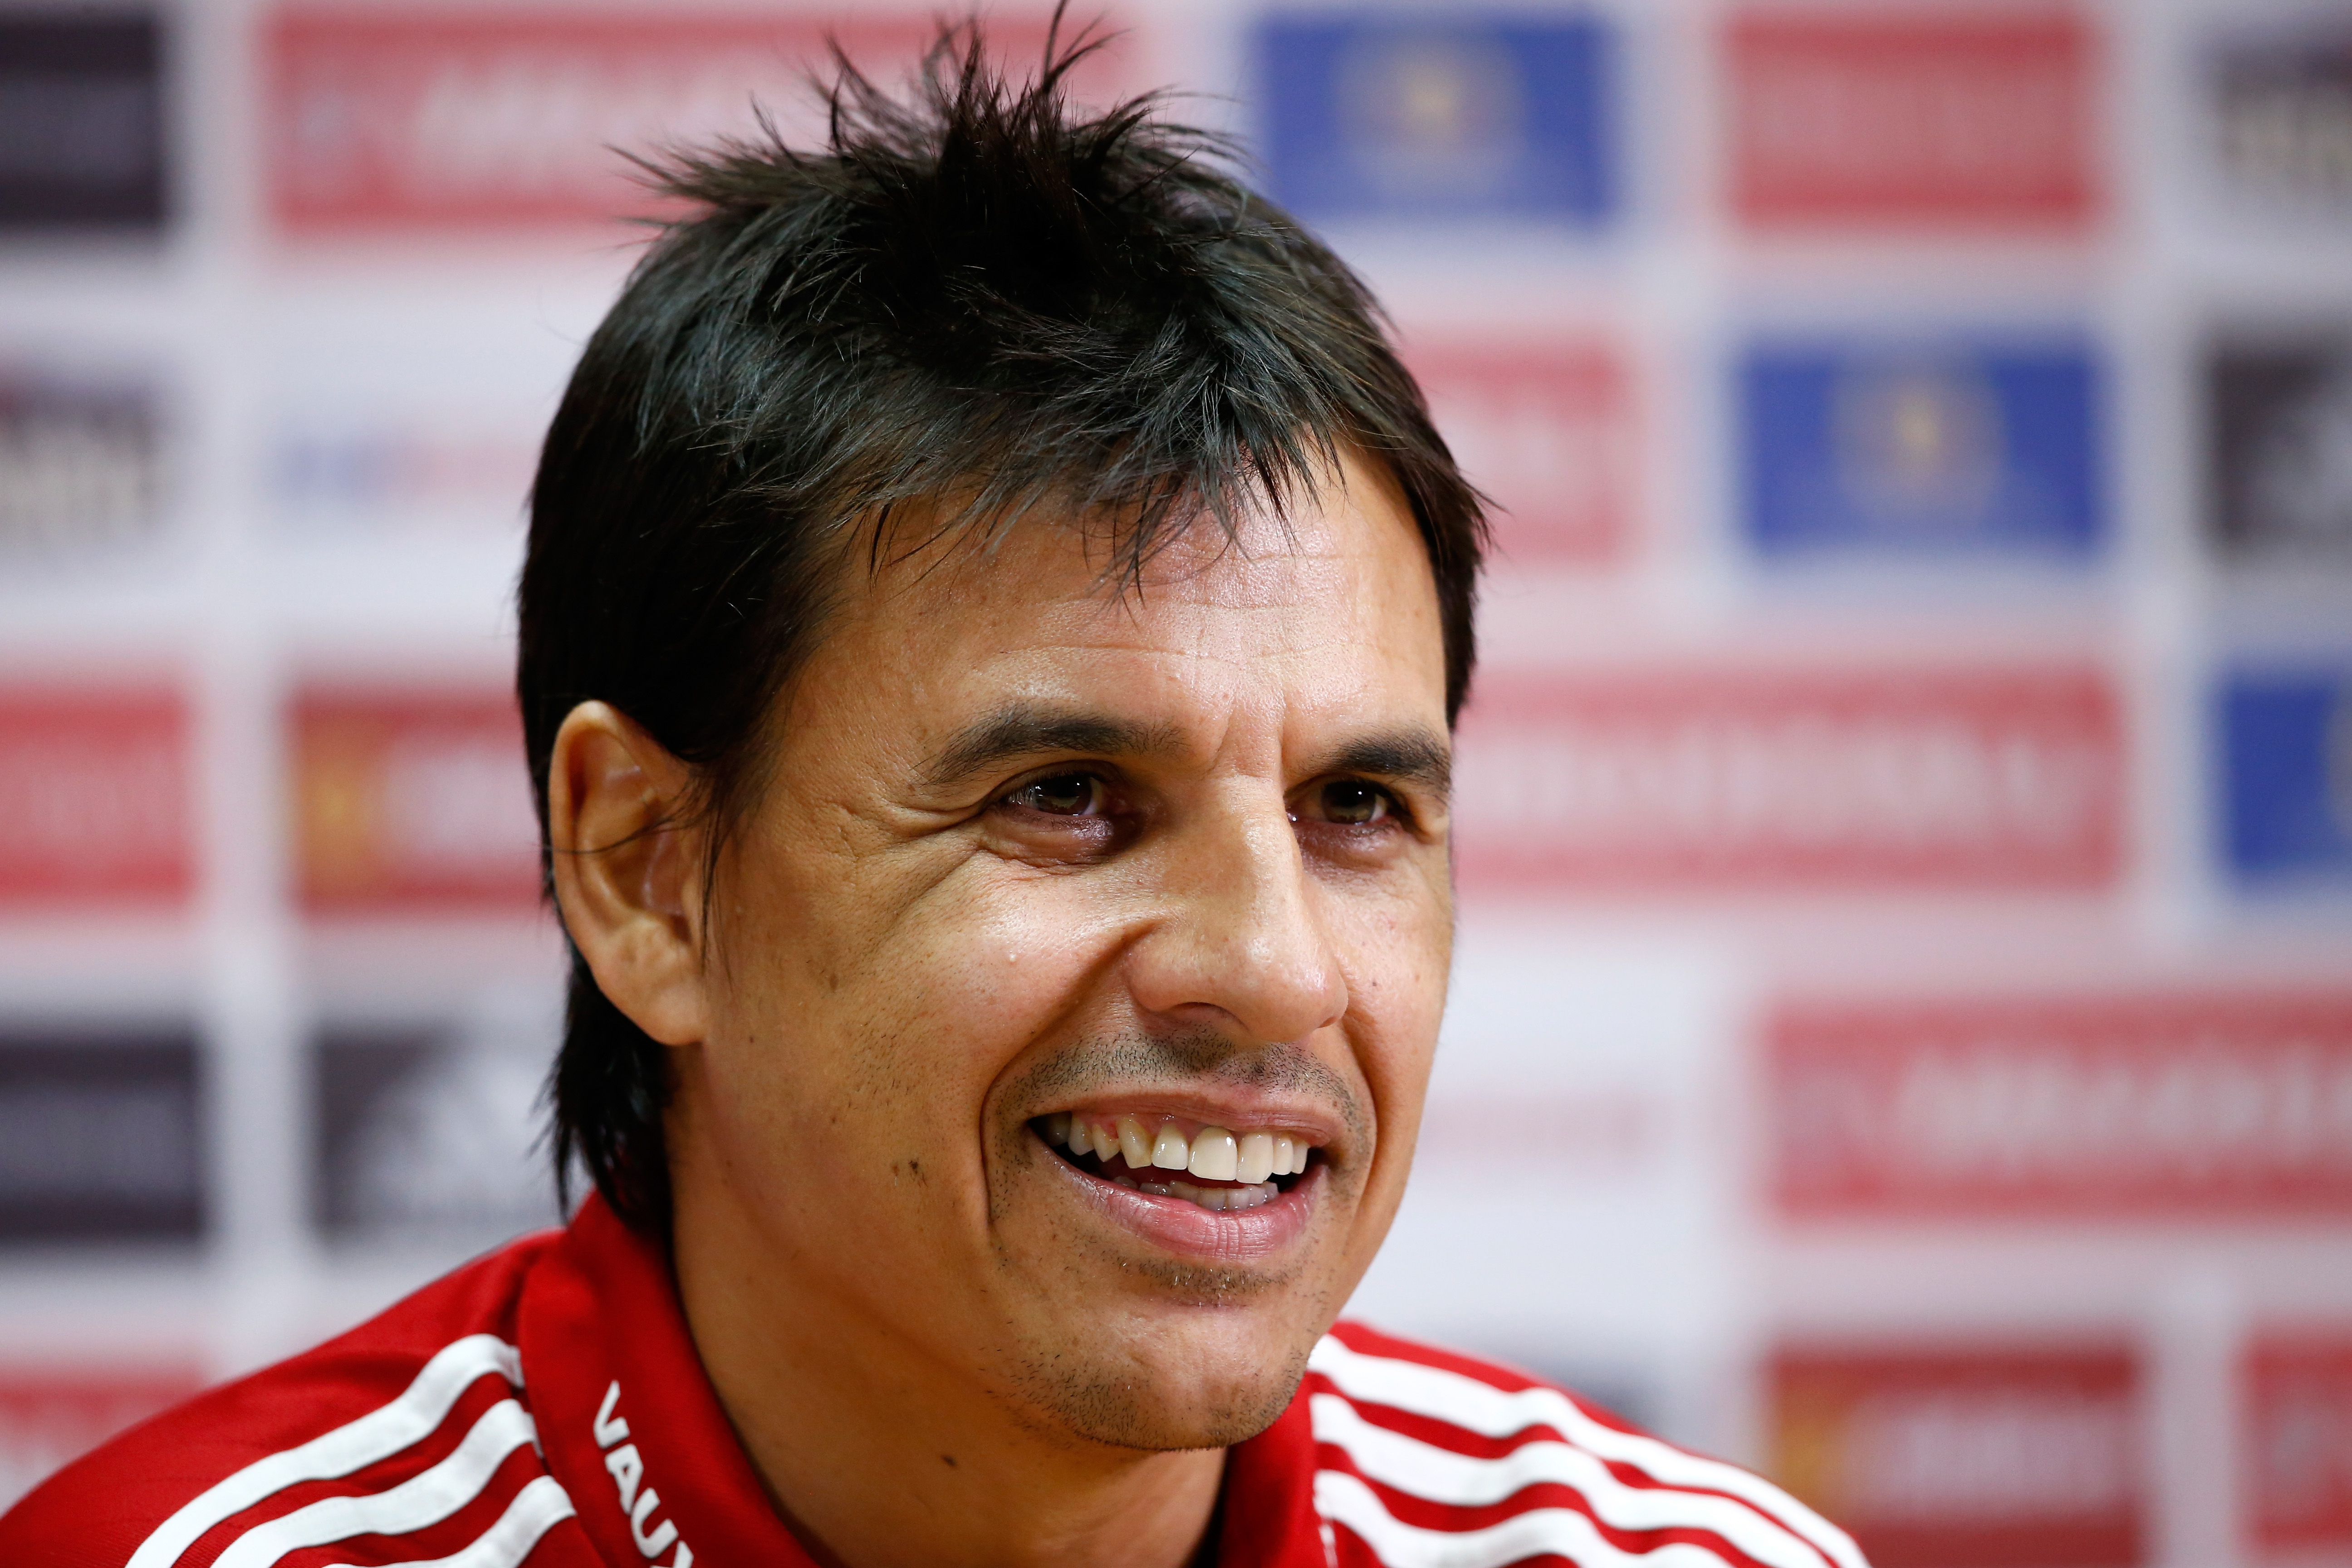 Wales manager Chris Coleman backing innovative new grass roots scheme